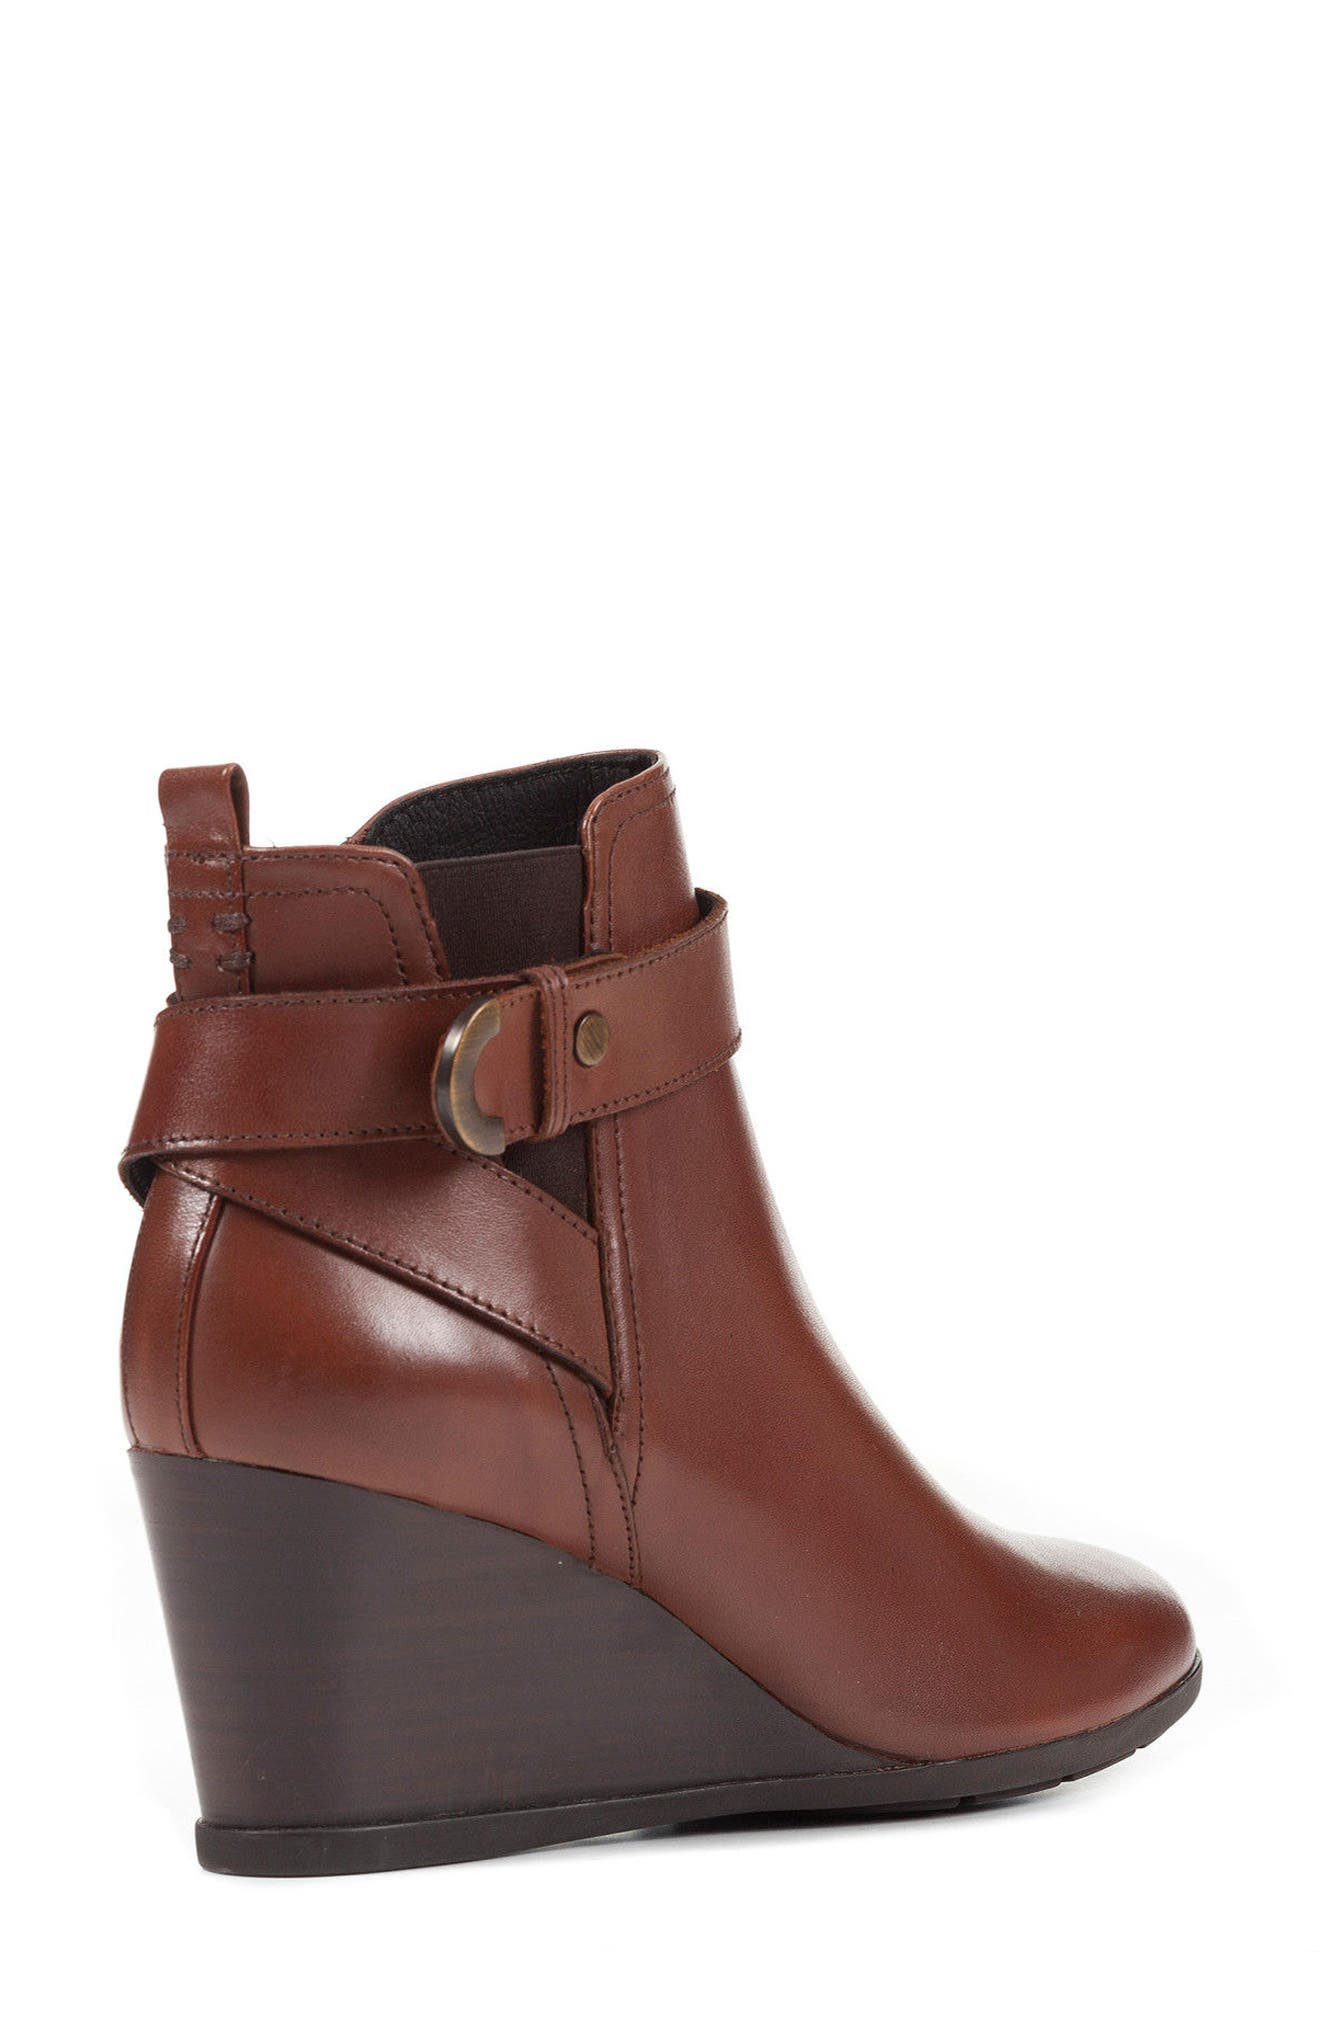 Inspiration Buckle Wedge Bootie,                             Alternate thumbnail 5, color,                             Brown Leather